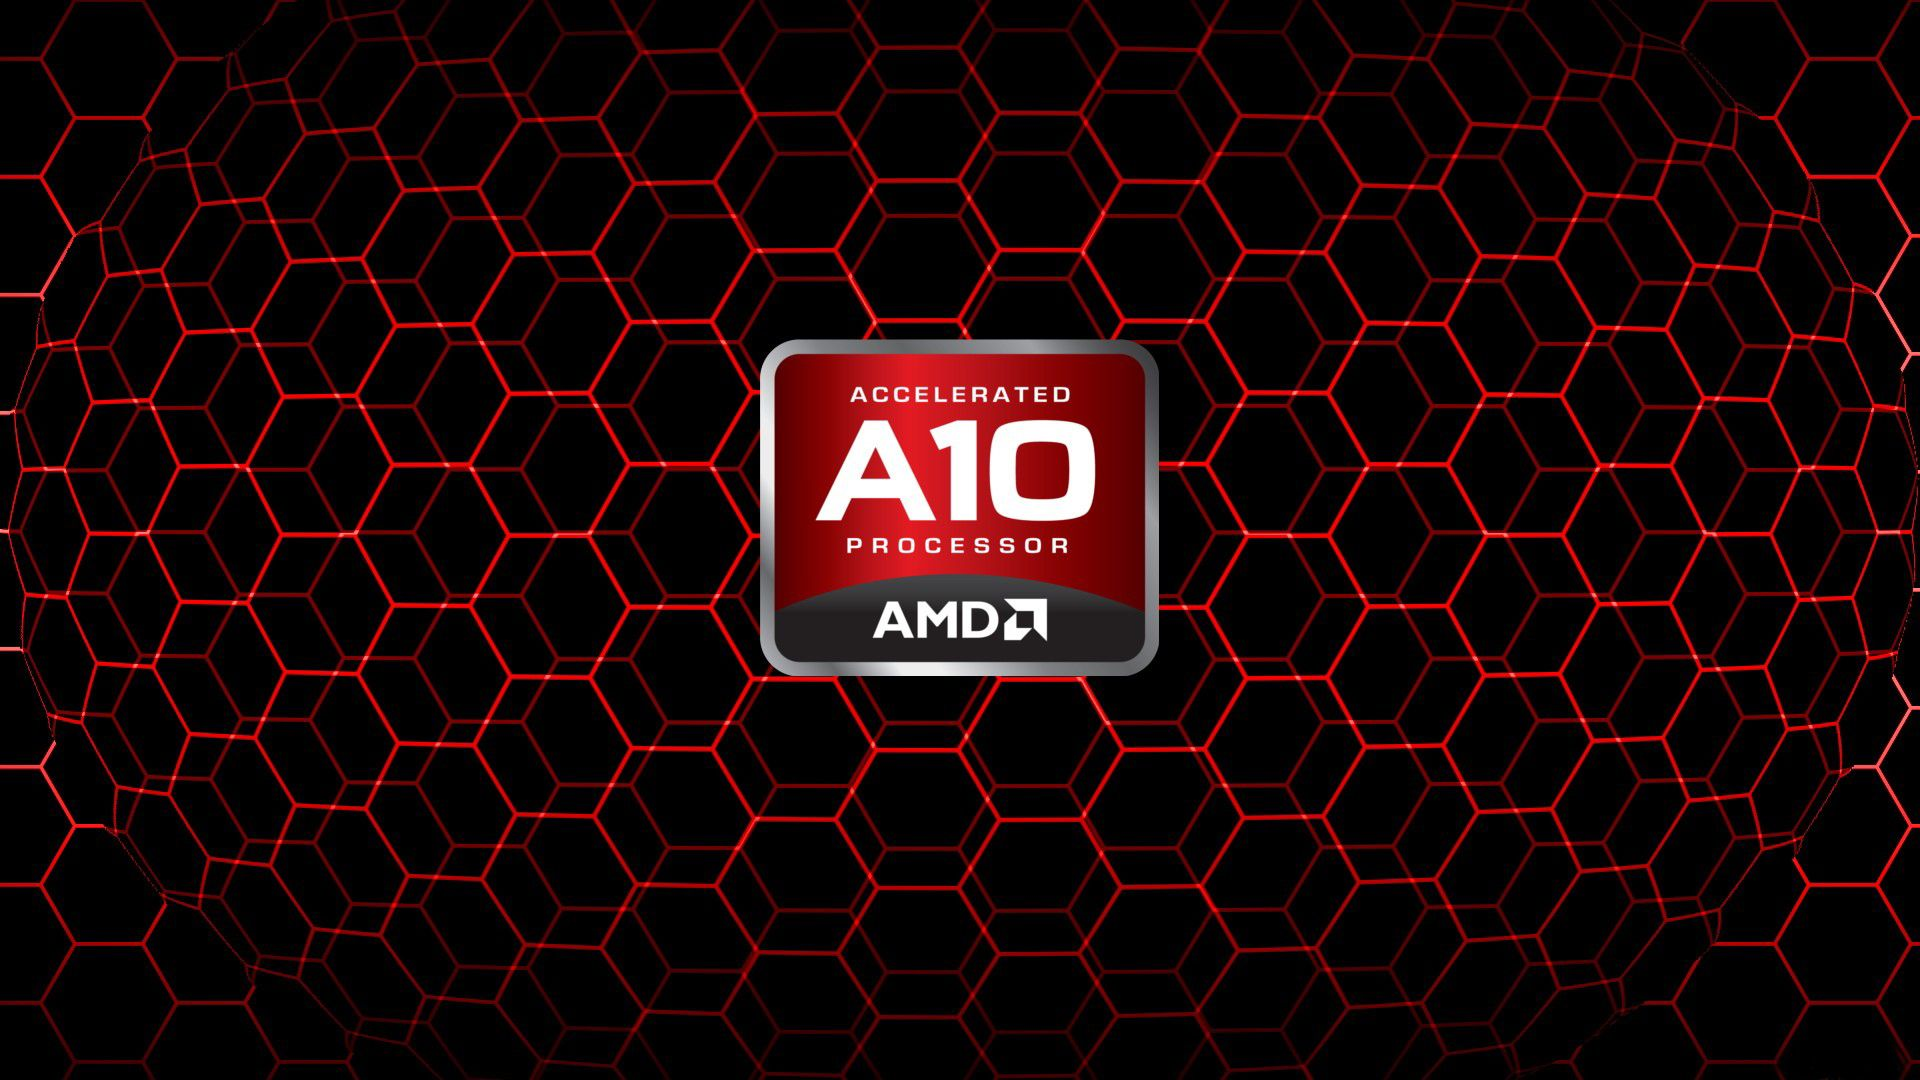 An Amd Wallpaper For Your Background On Your Amd Powered Laptop